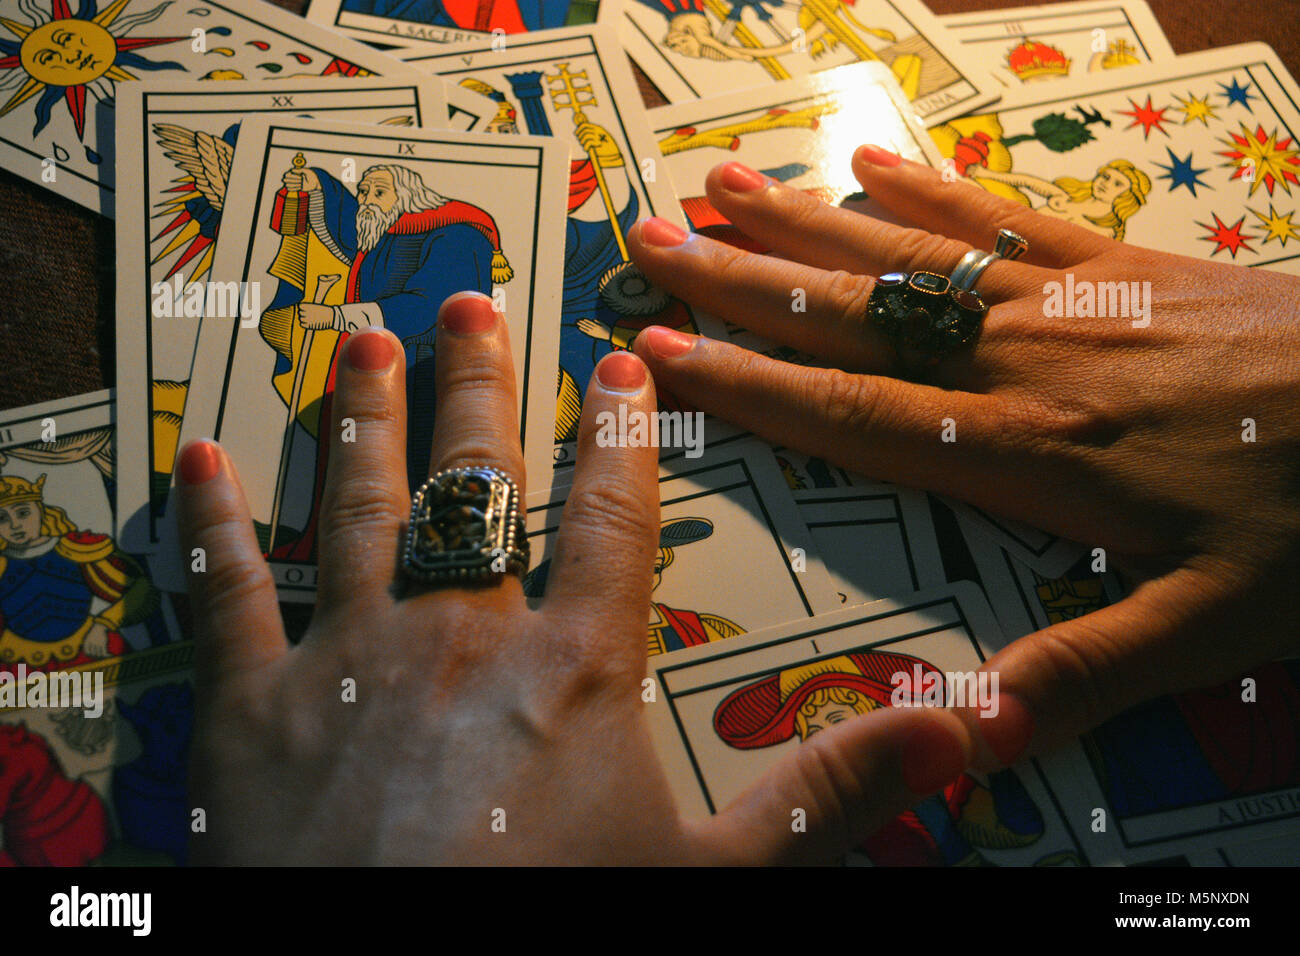 Tarot table and hands - Stock Image